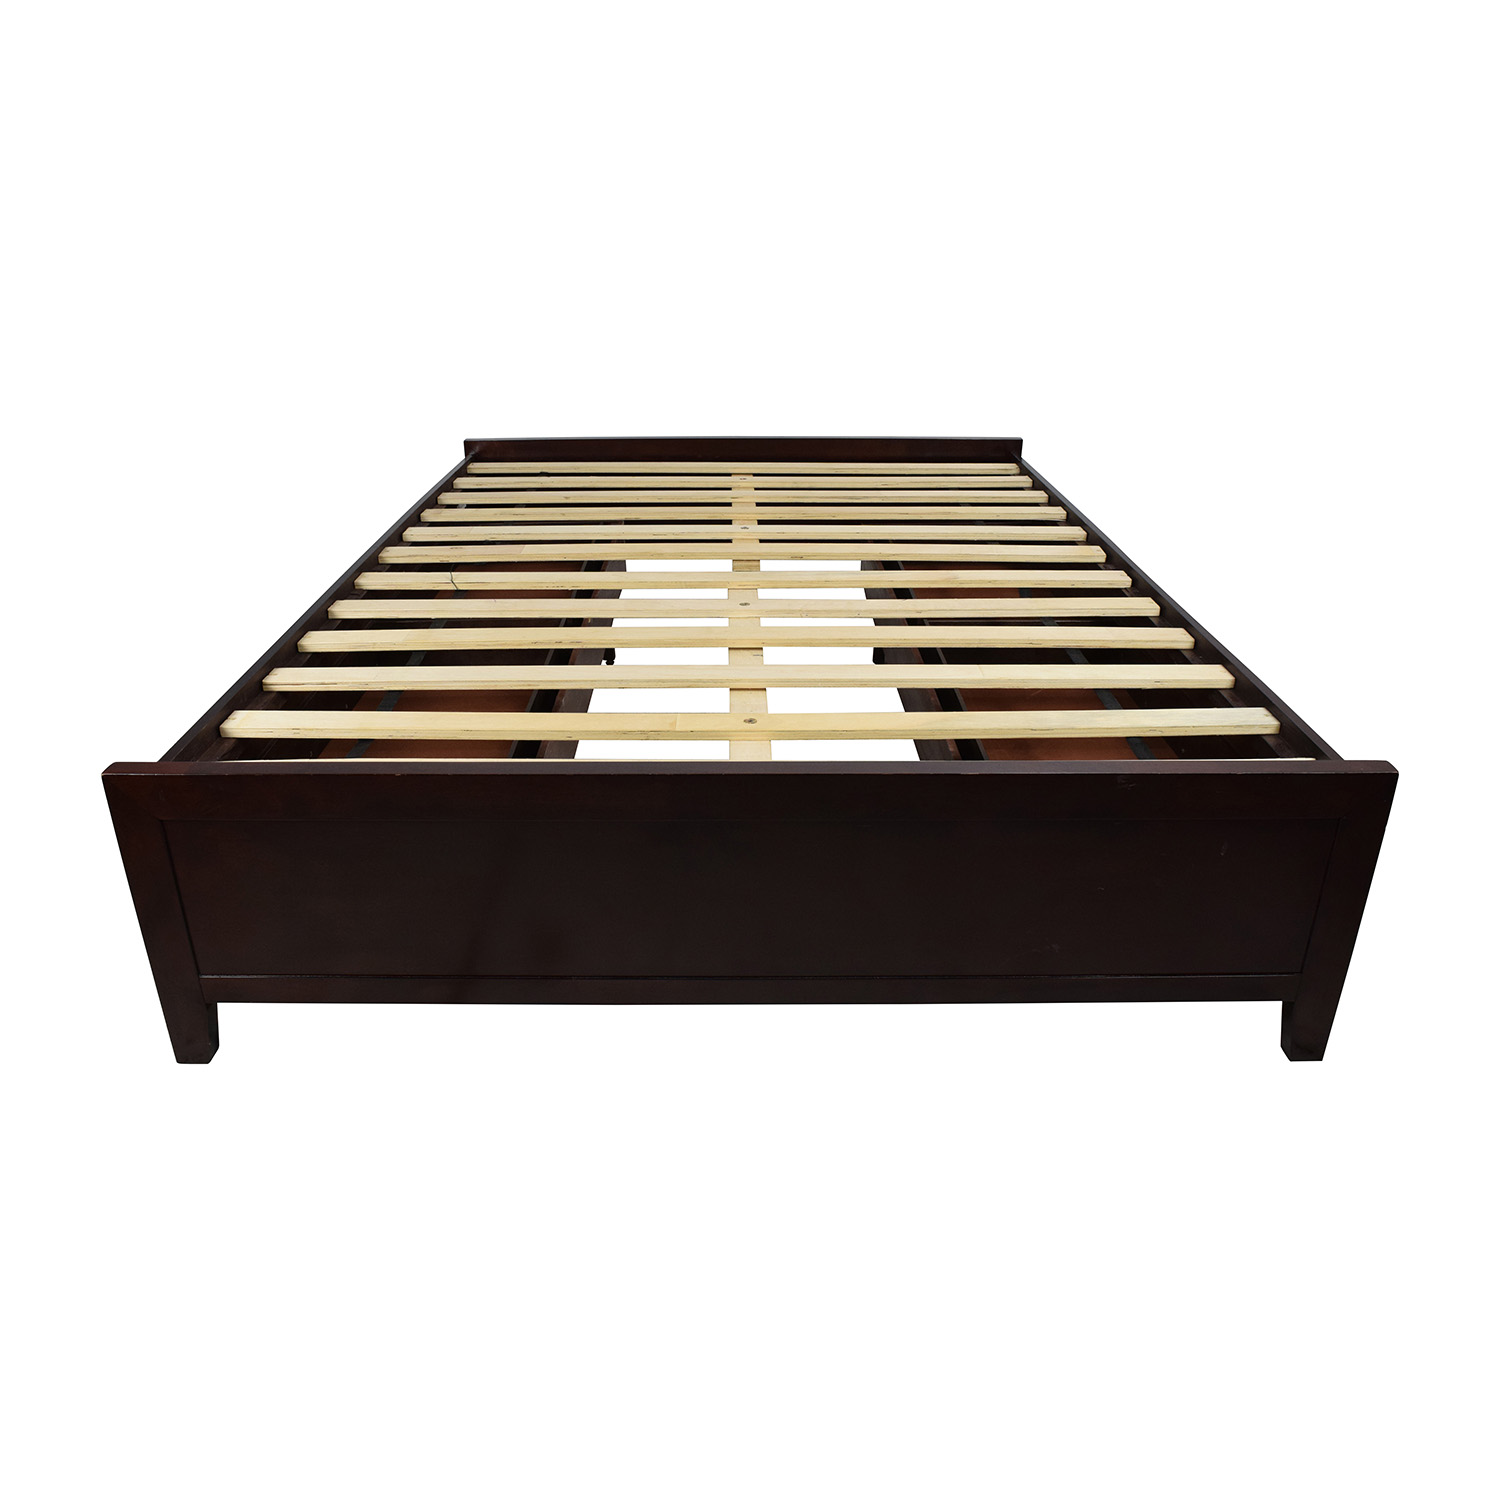 Wooden Queen Size Storage Bed Frame coupon